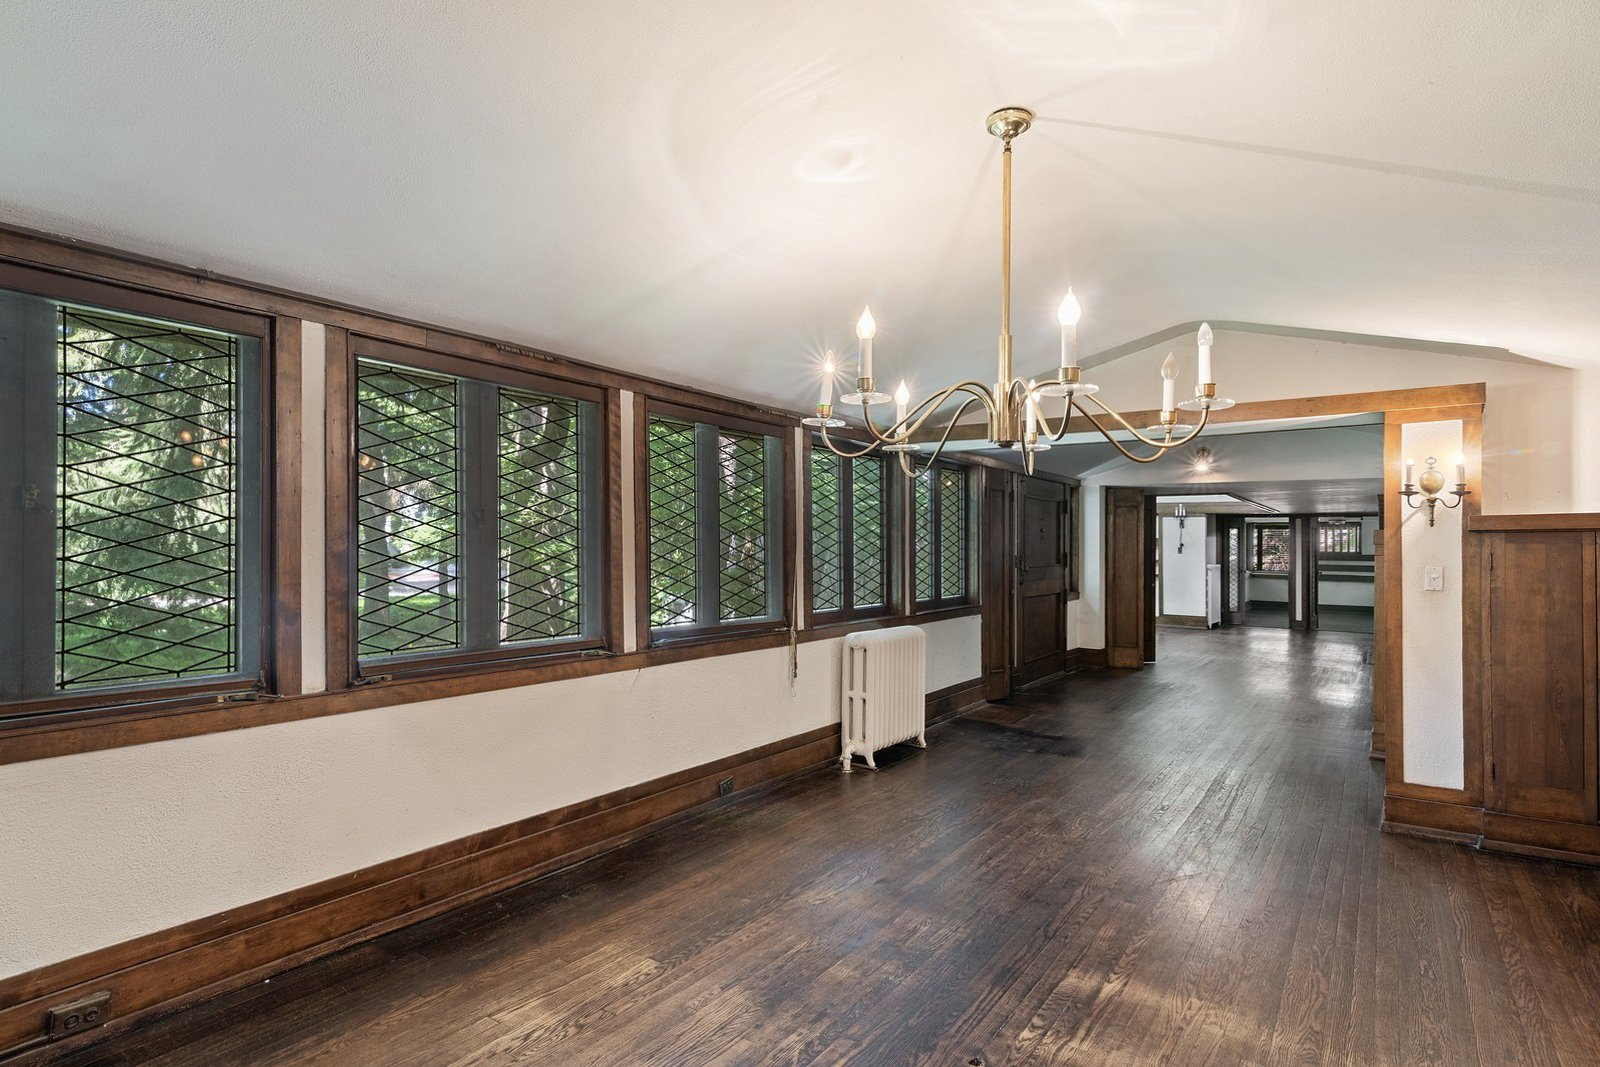 This Rare 1909 Frank Lloyd Wright Home With a Cathedral-Like Living Room Asks $900K